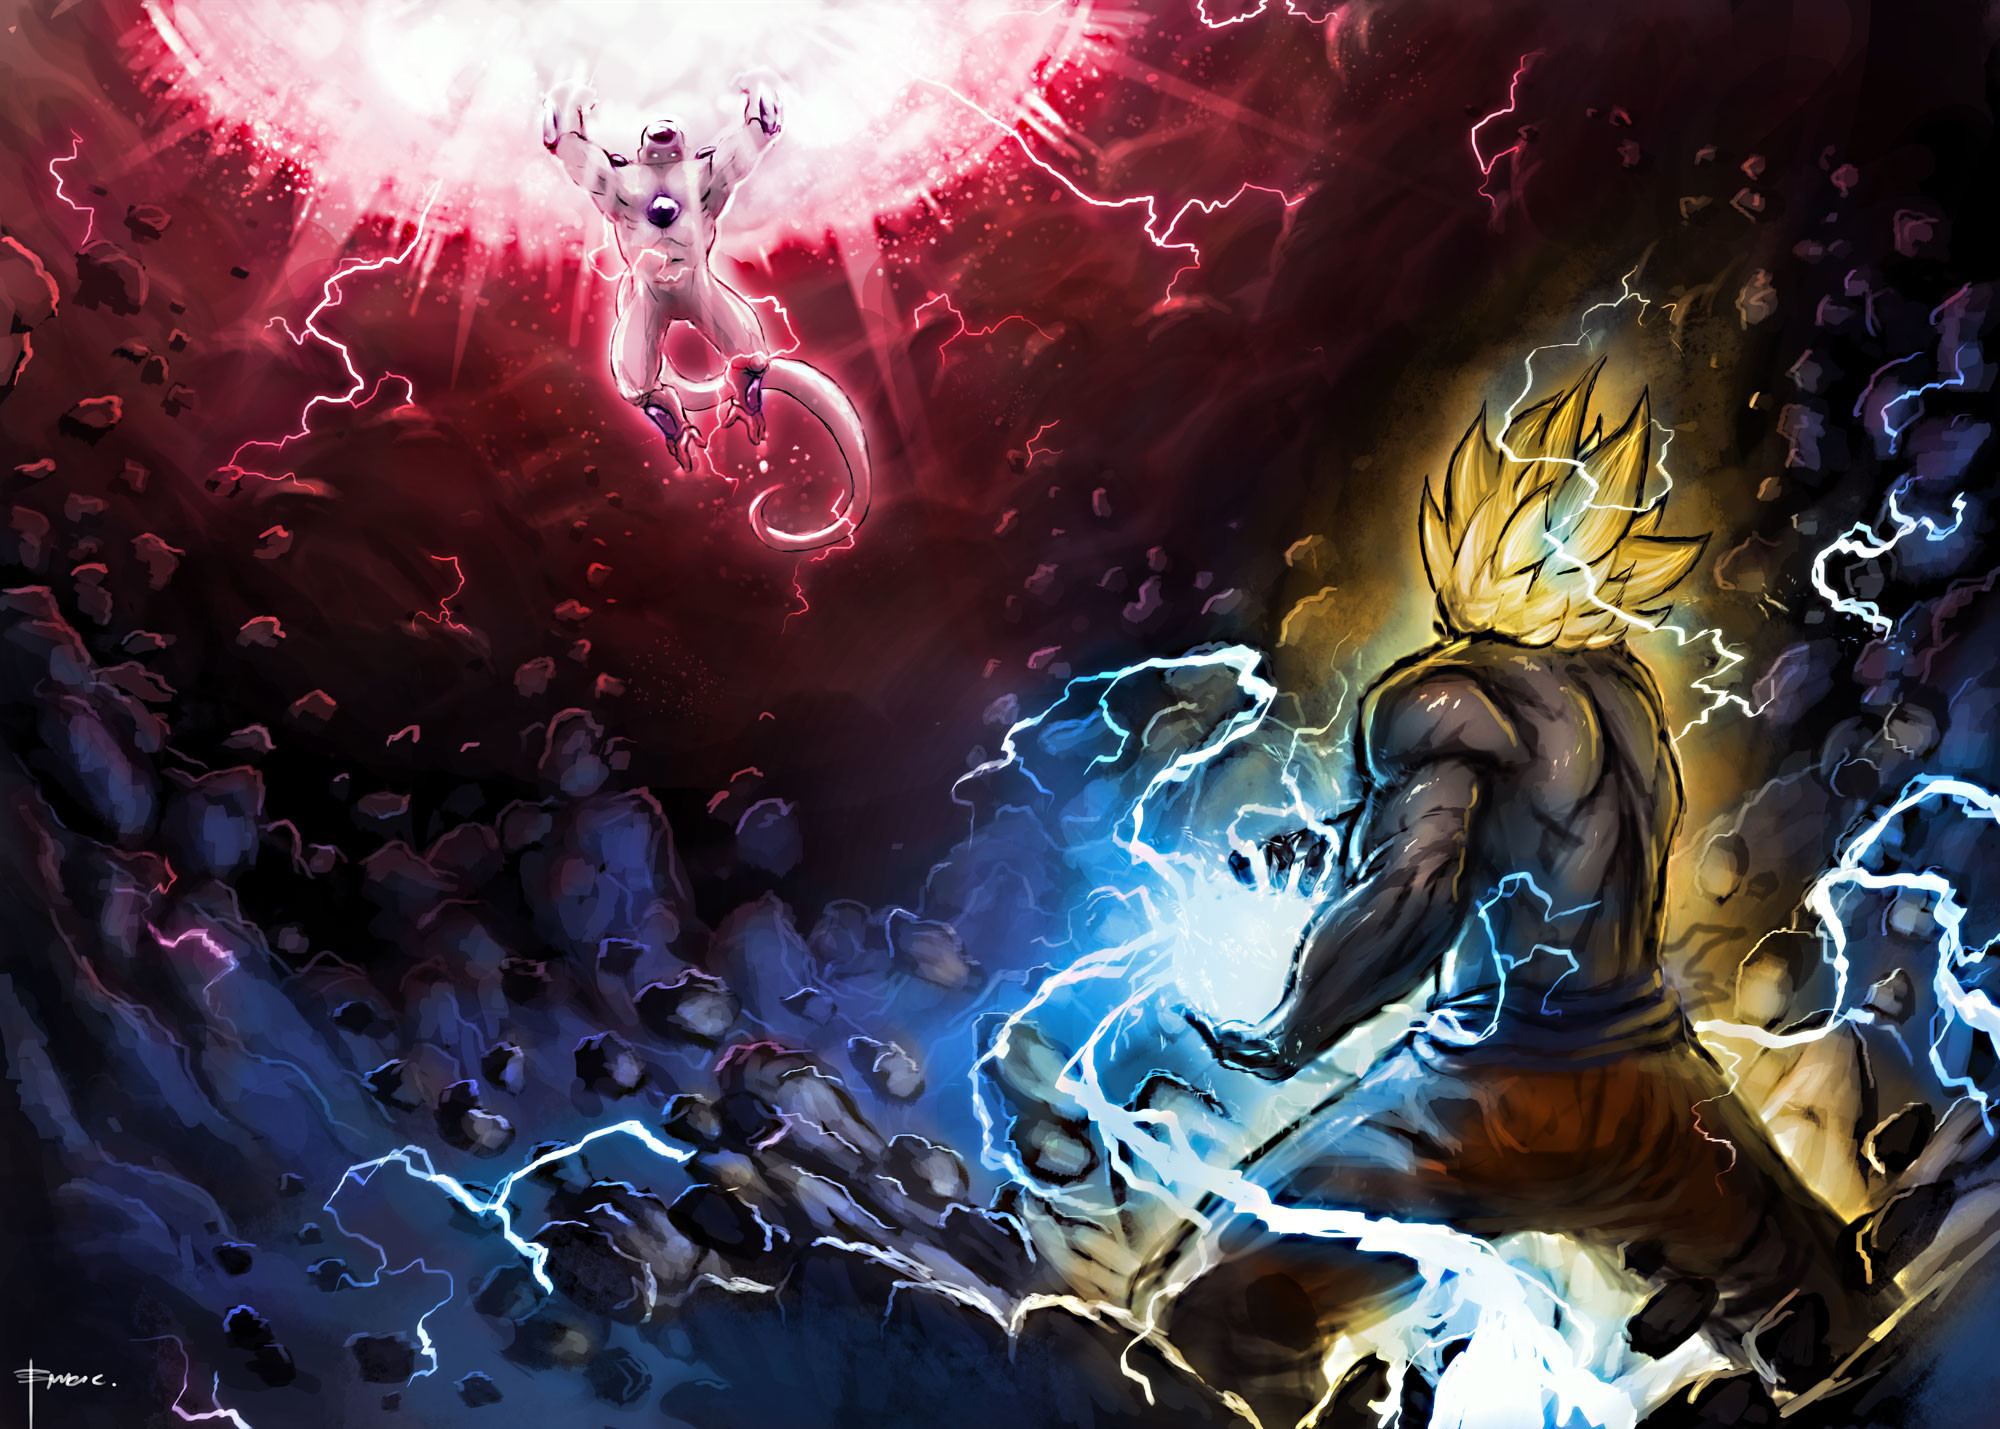 dbz hd wallpaper 1920x1080